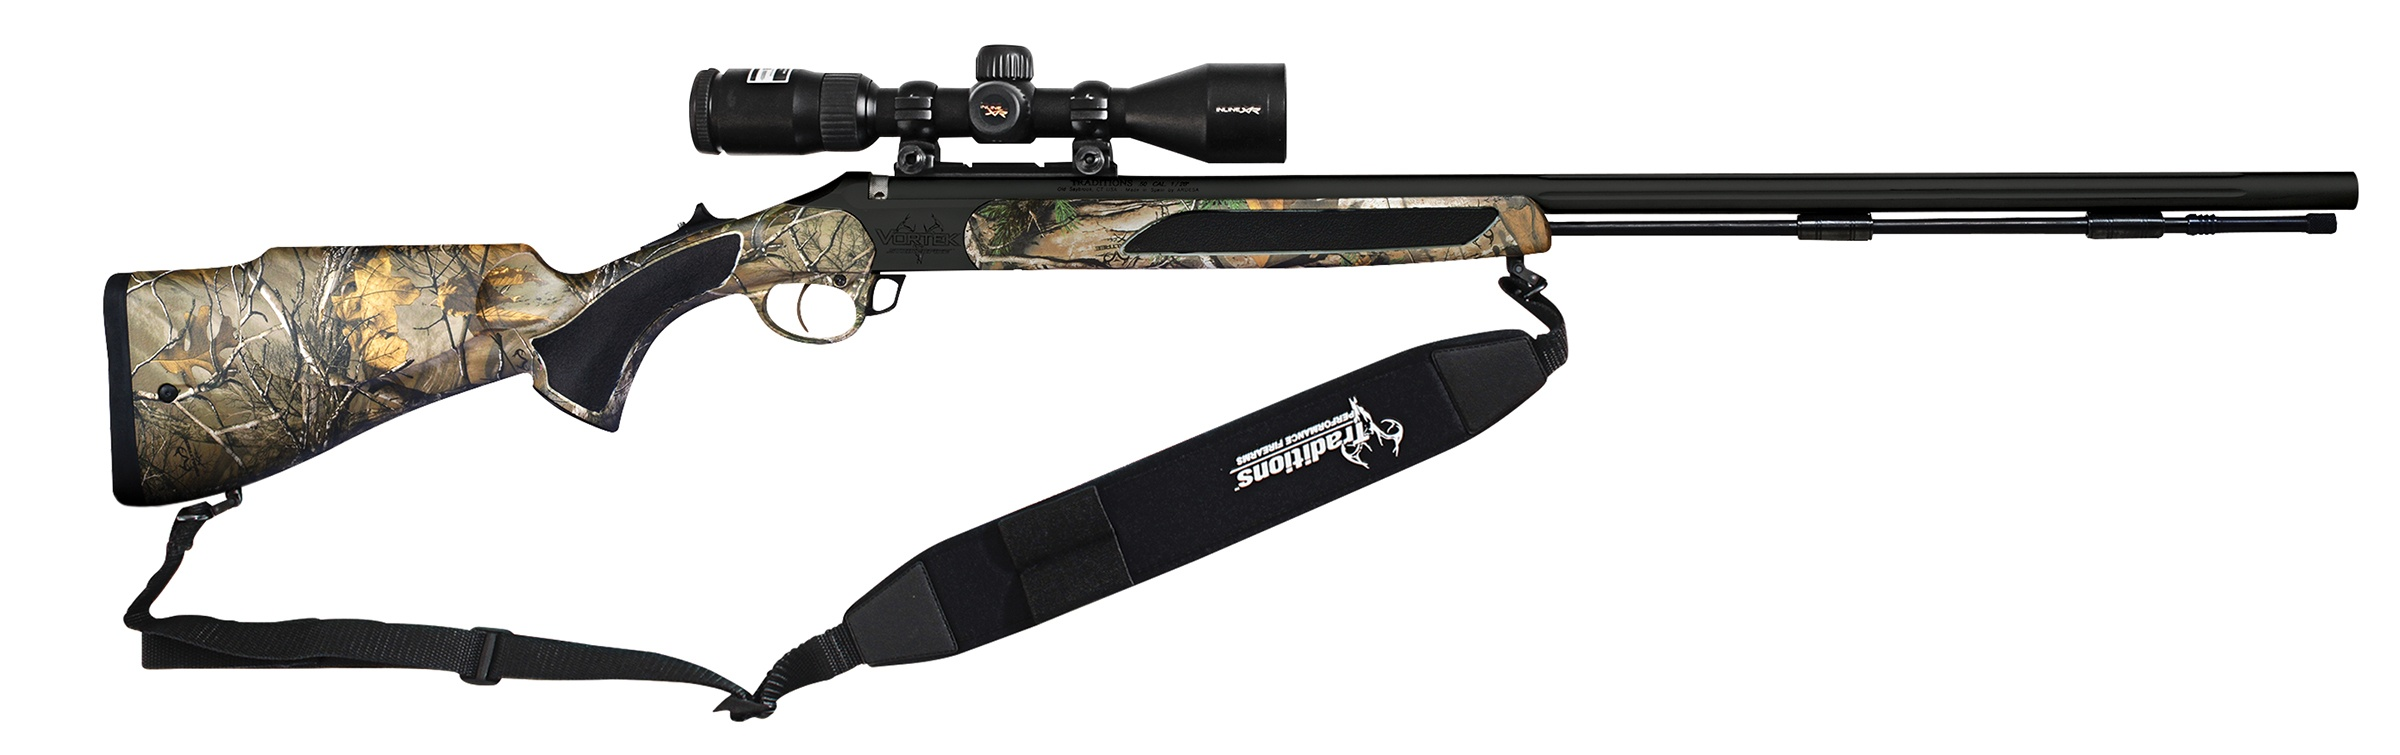 Traditions  50 Cal Crush Package Vortek StrikerFire Muzzleloader with 28